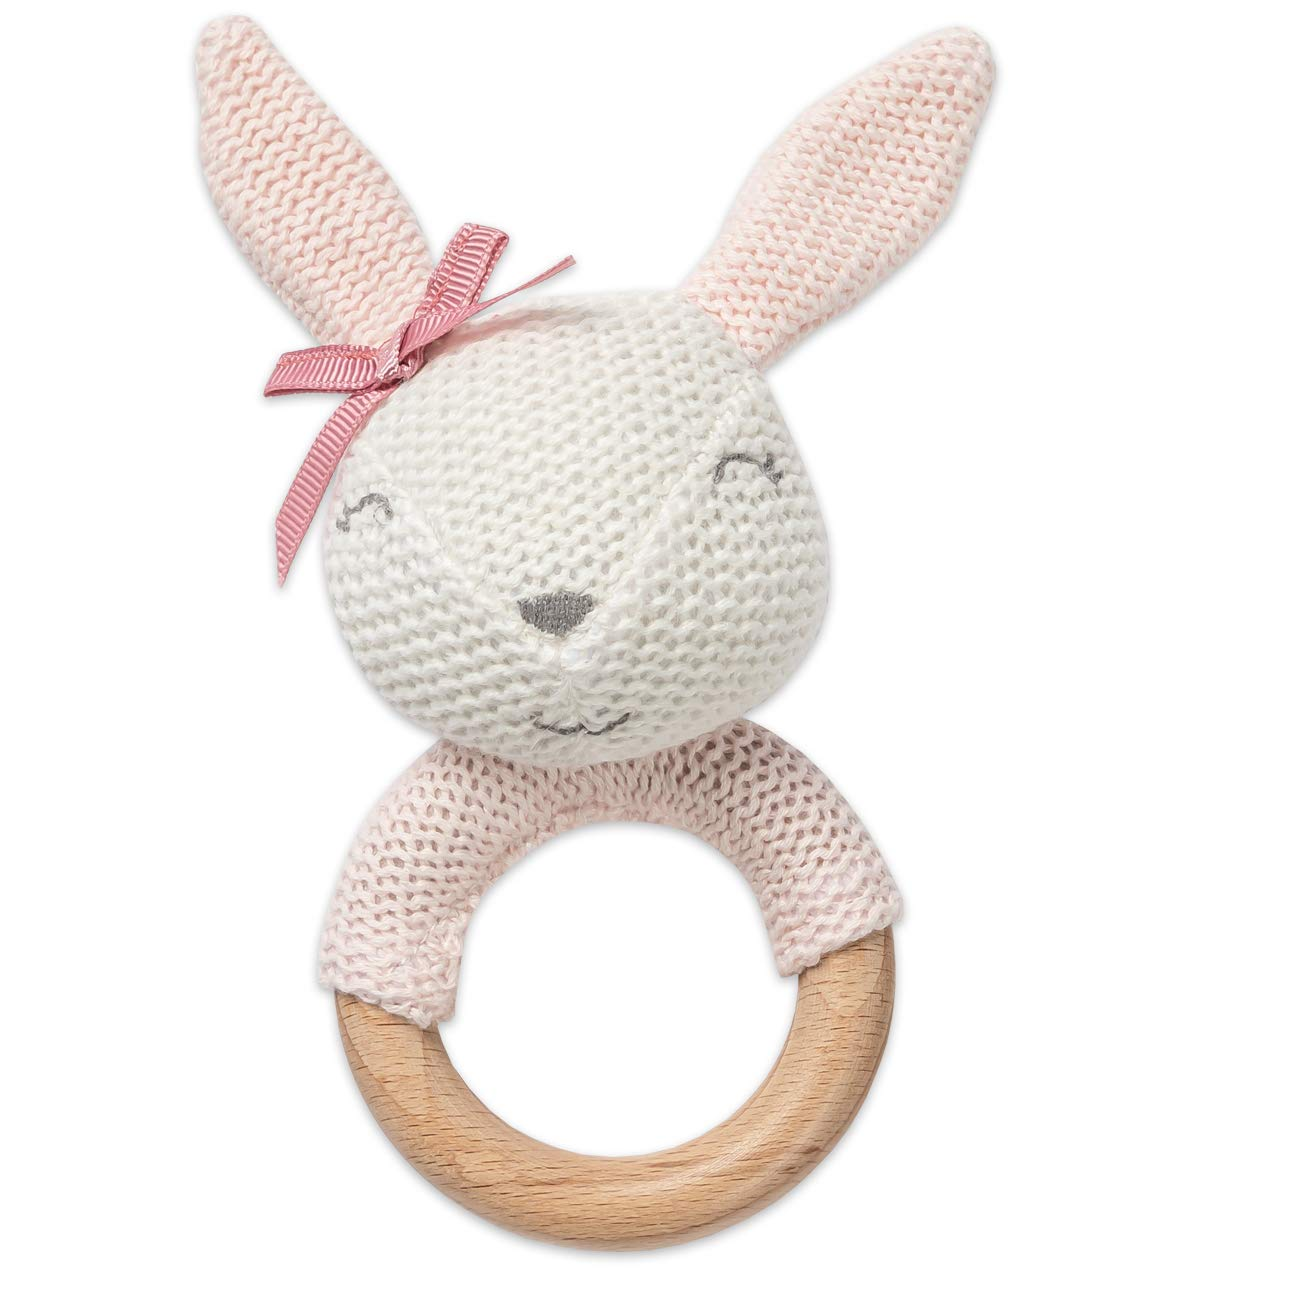 Brownlow Gifts Baby Rattle with Beechwood Teething Ring, 5